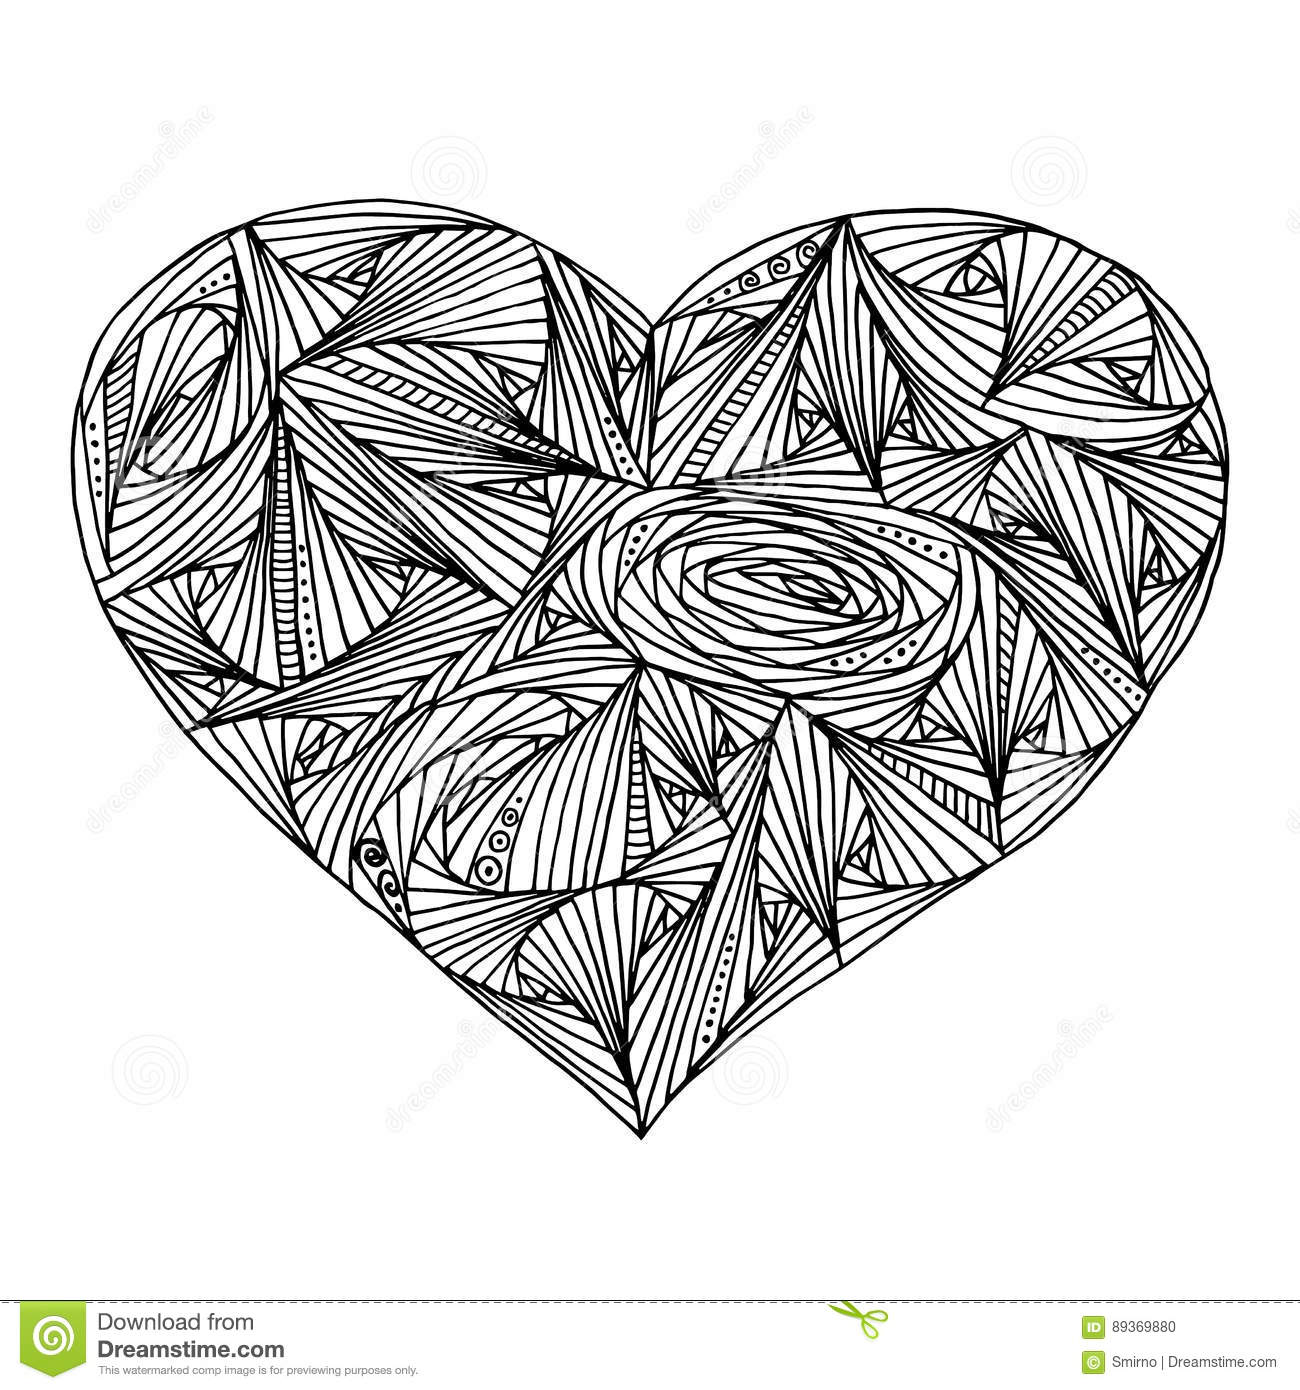 Abstract Heart With Geometric Pattern For Coloring Book ...